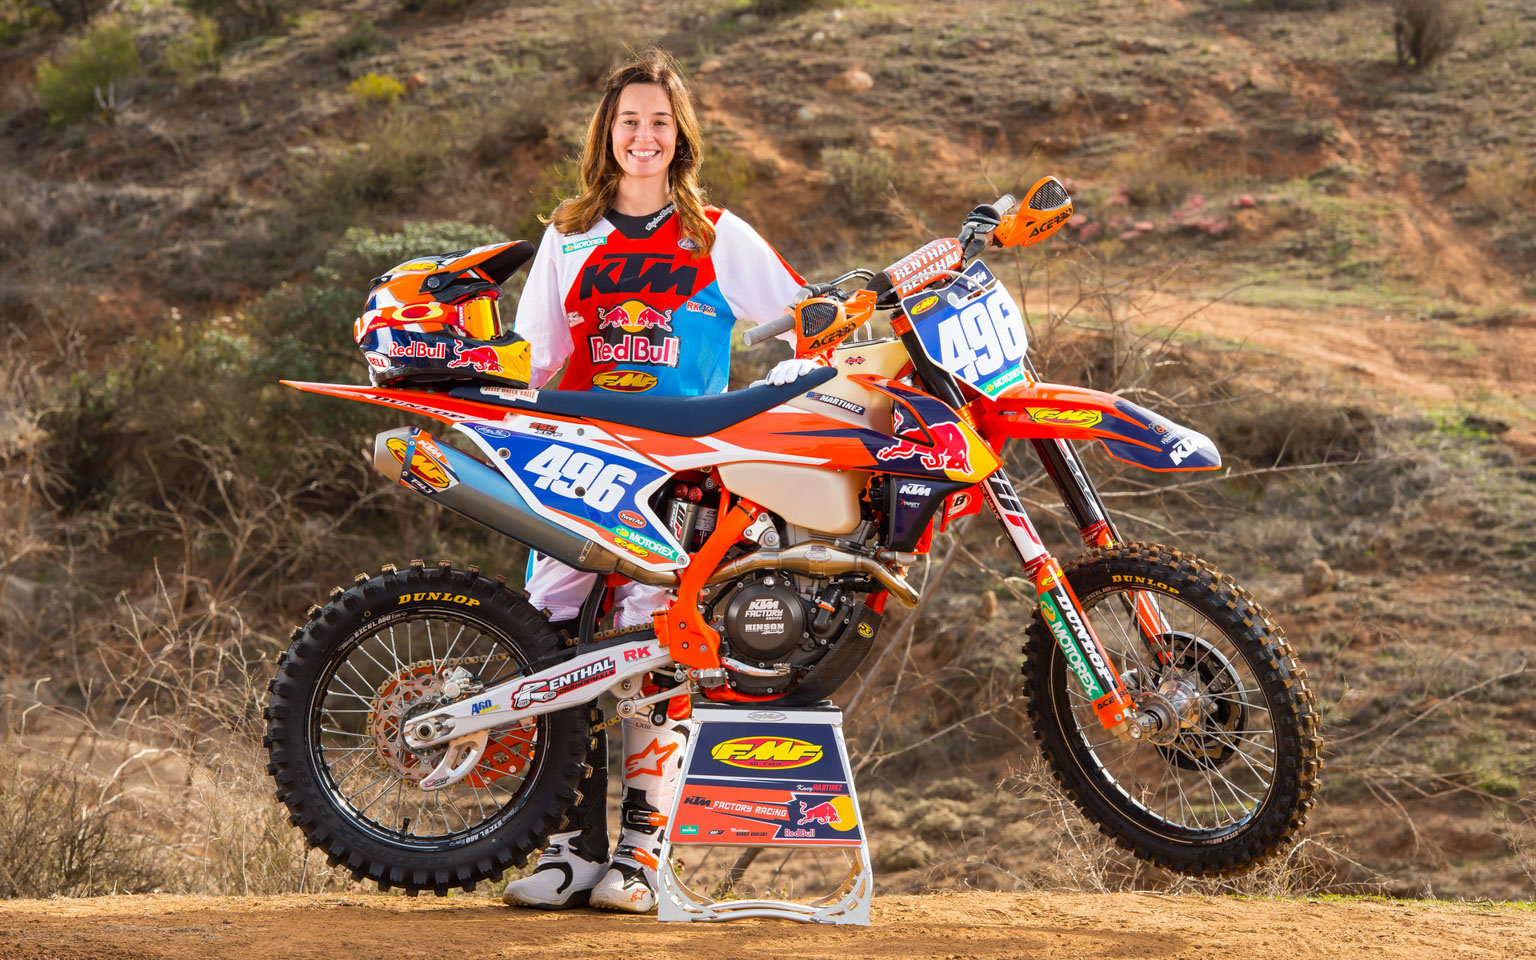 Martinez is a top racer and on team KTM for 2017